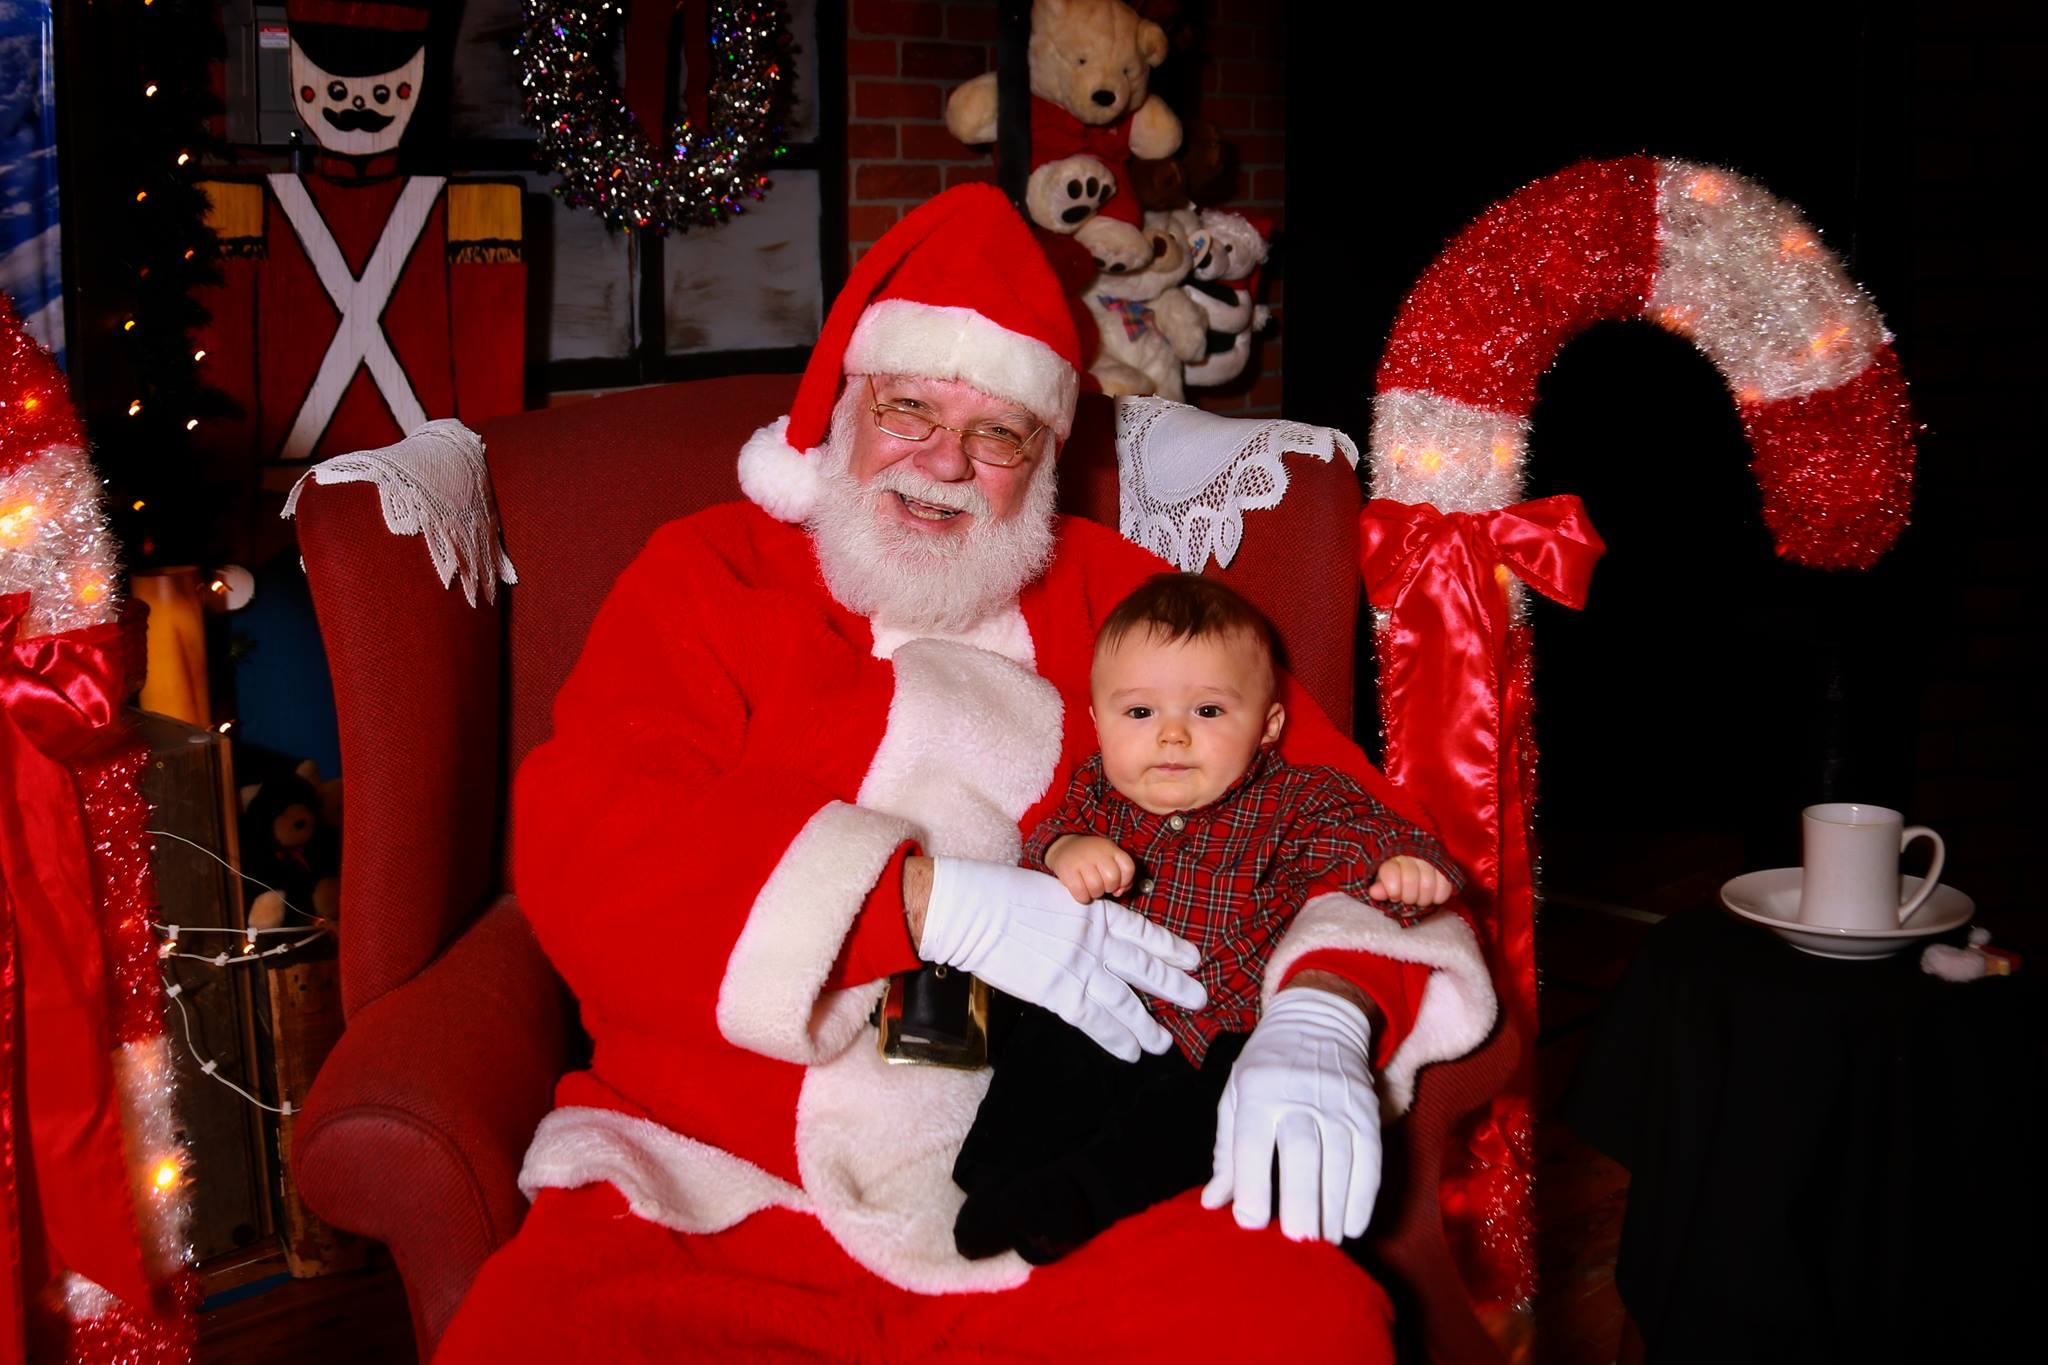 Image is an example of a photograph with santa. This will not be the backdrop that will be utilized the day of the event.